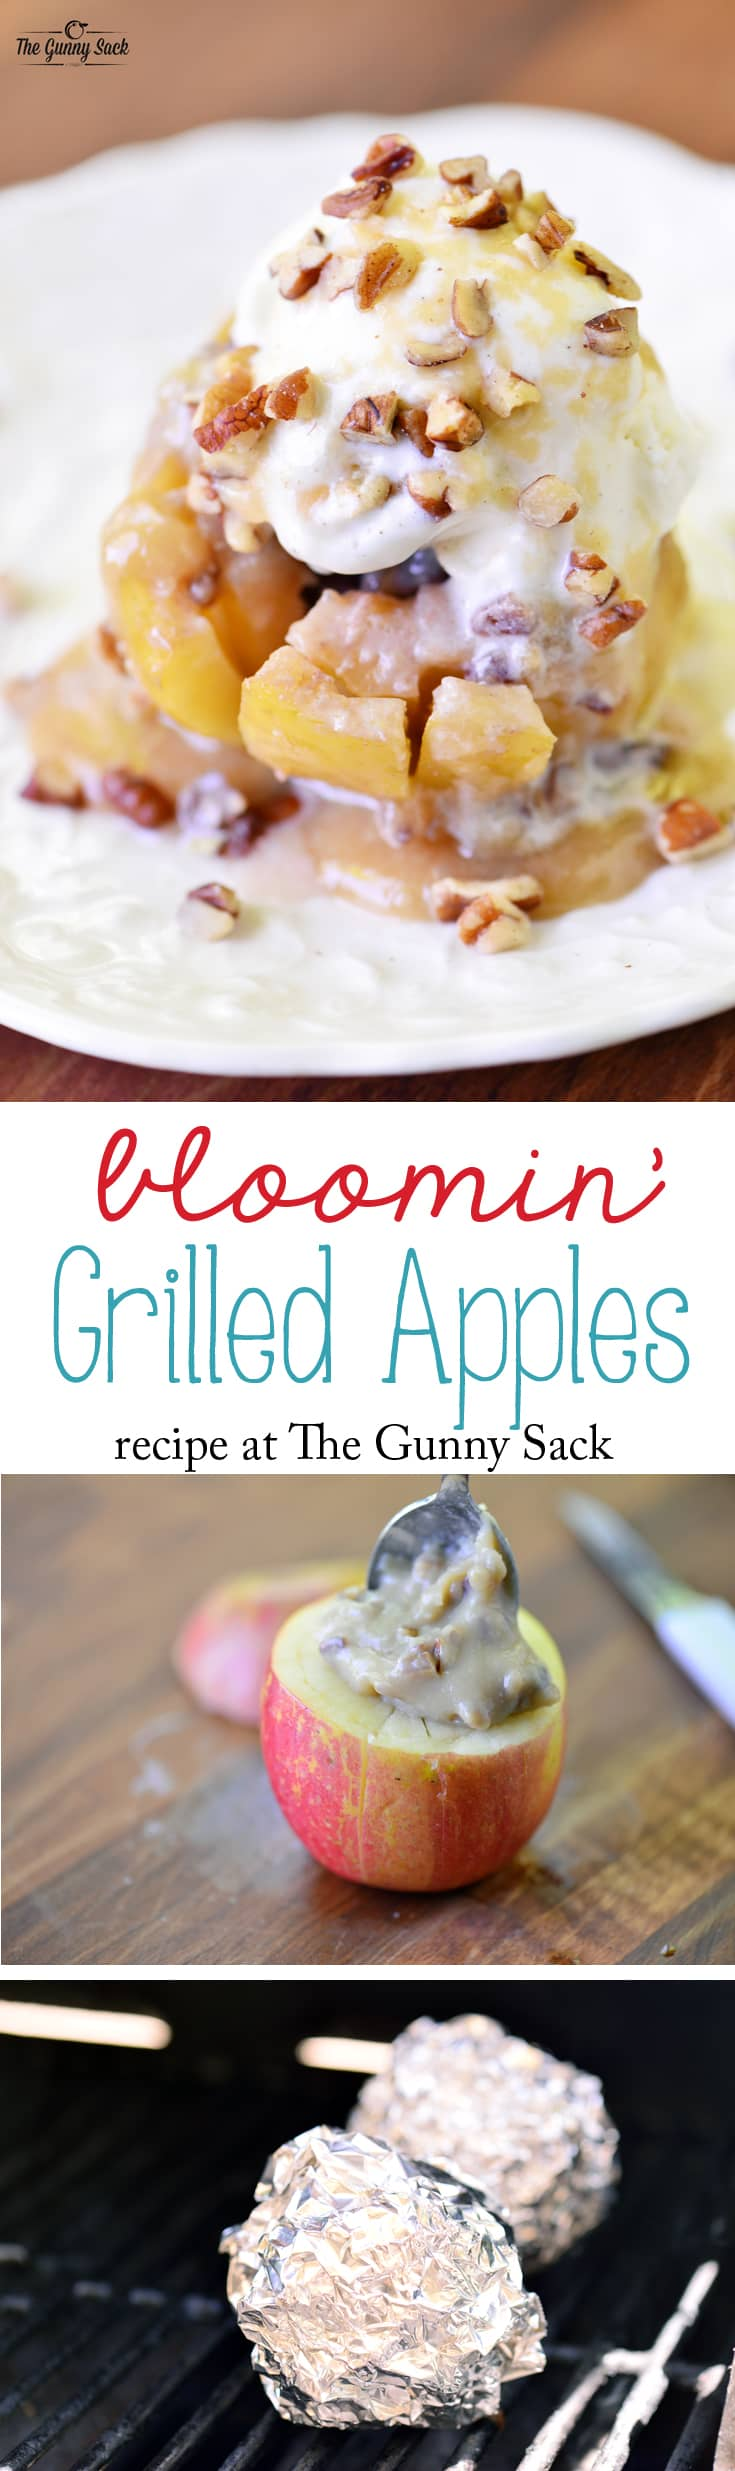 Bloomin' Grilled Apples Recipe | The Gunny Sack